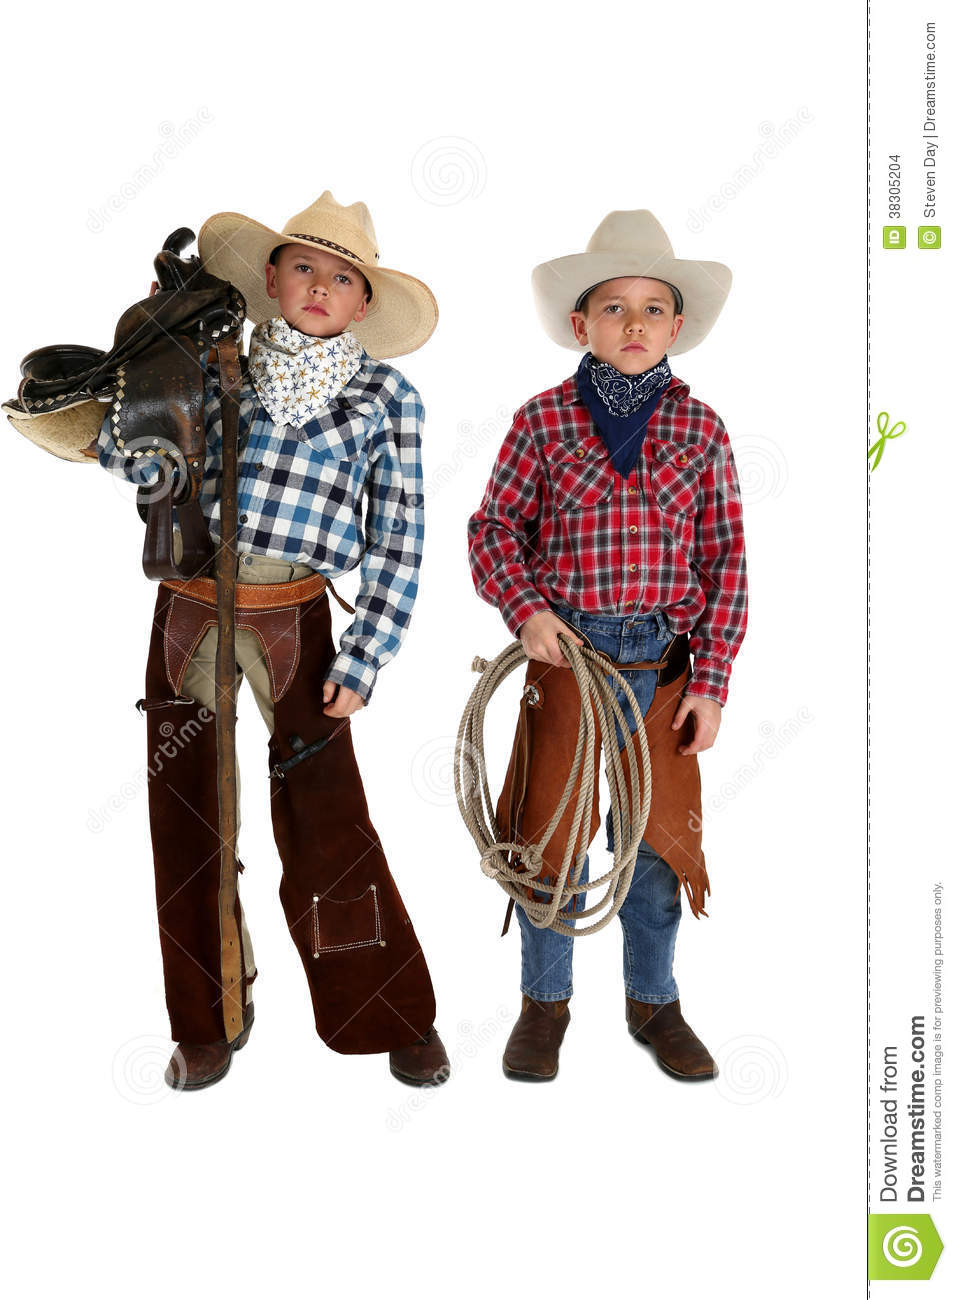 Why do cowboys wear chaps?